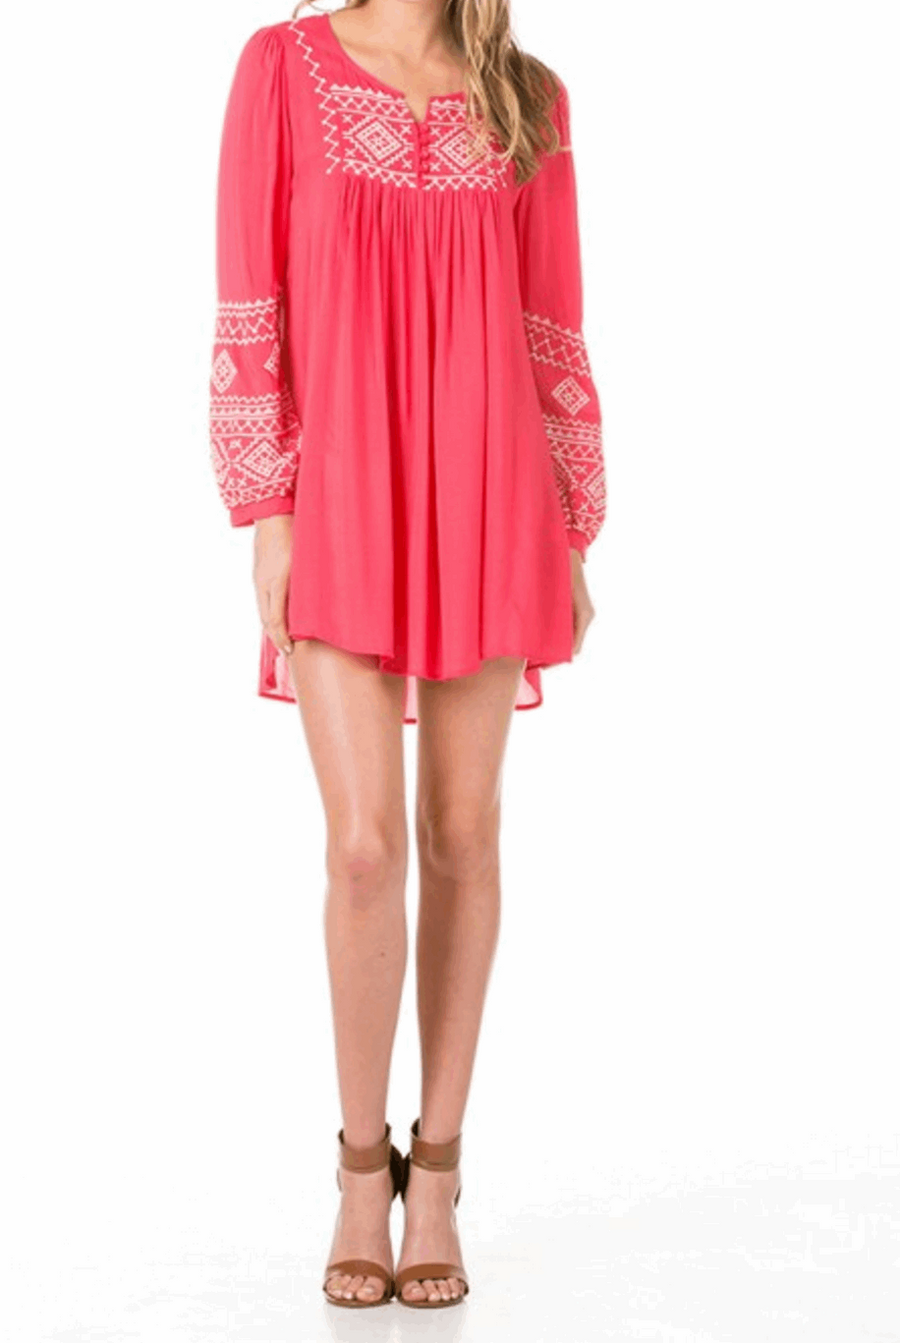 Full Tunic Mini Dress with Bishop Sleeves in Coral from Monoreno | Beauty Cafe - 1